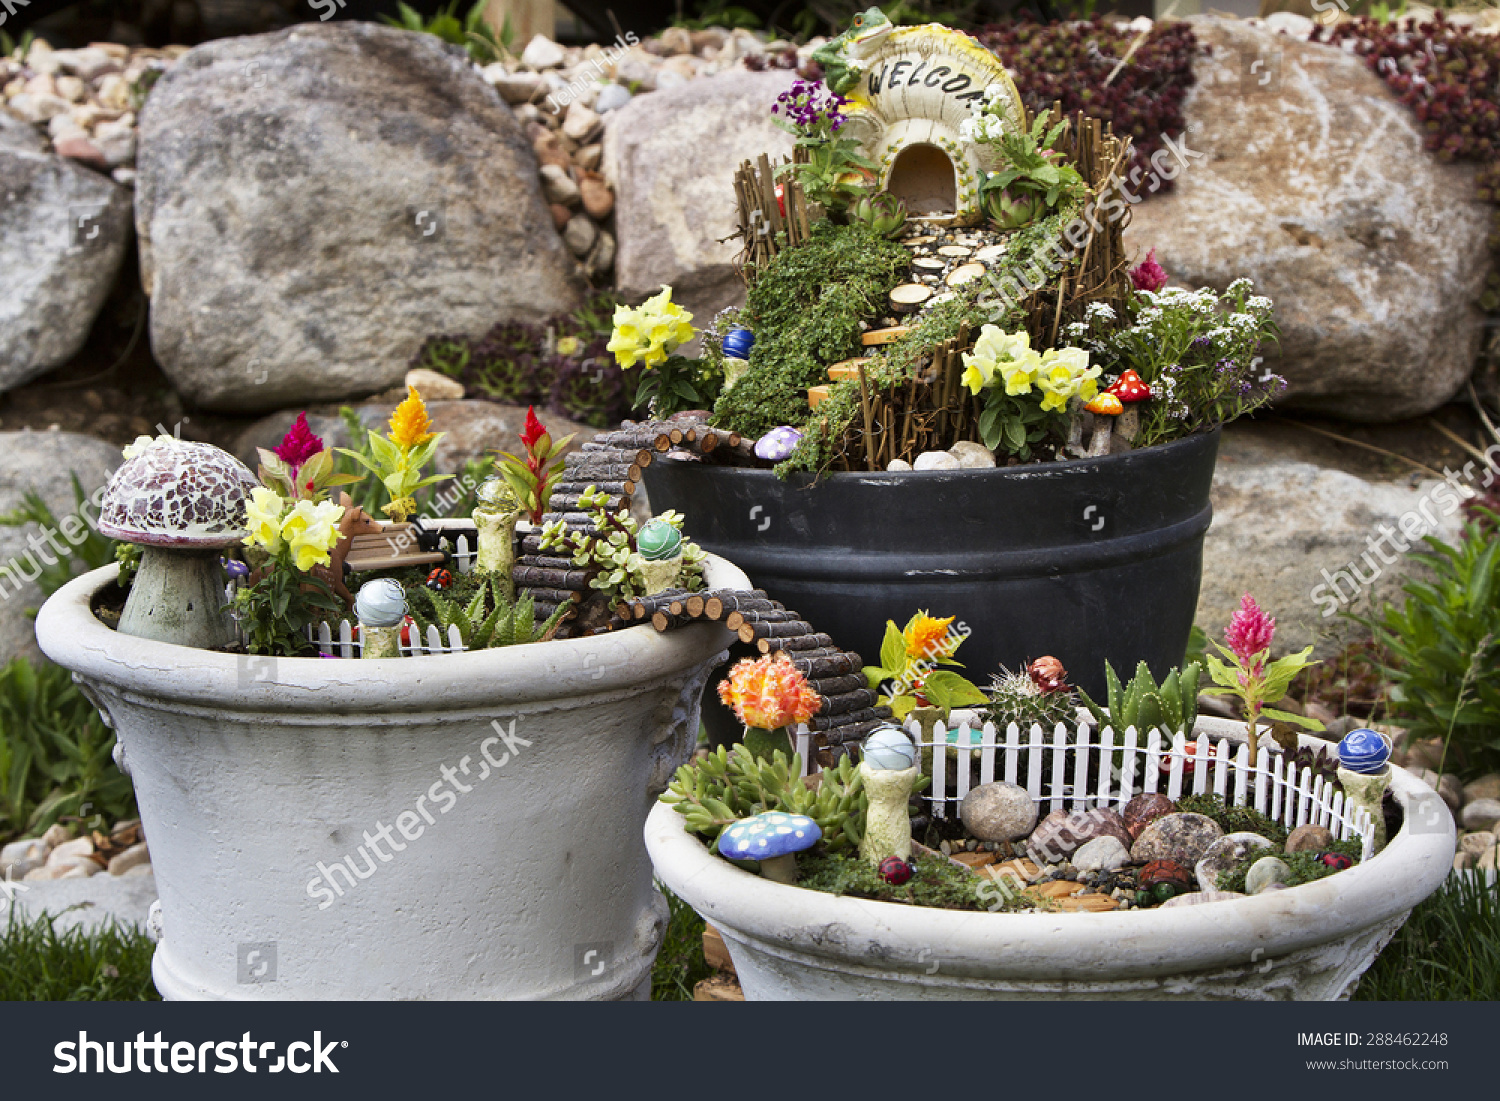 Fairy Garden In A Flower Pot With Walking Path, Wooden Bridges And A Fairy  House